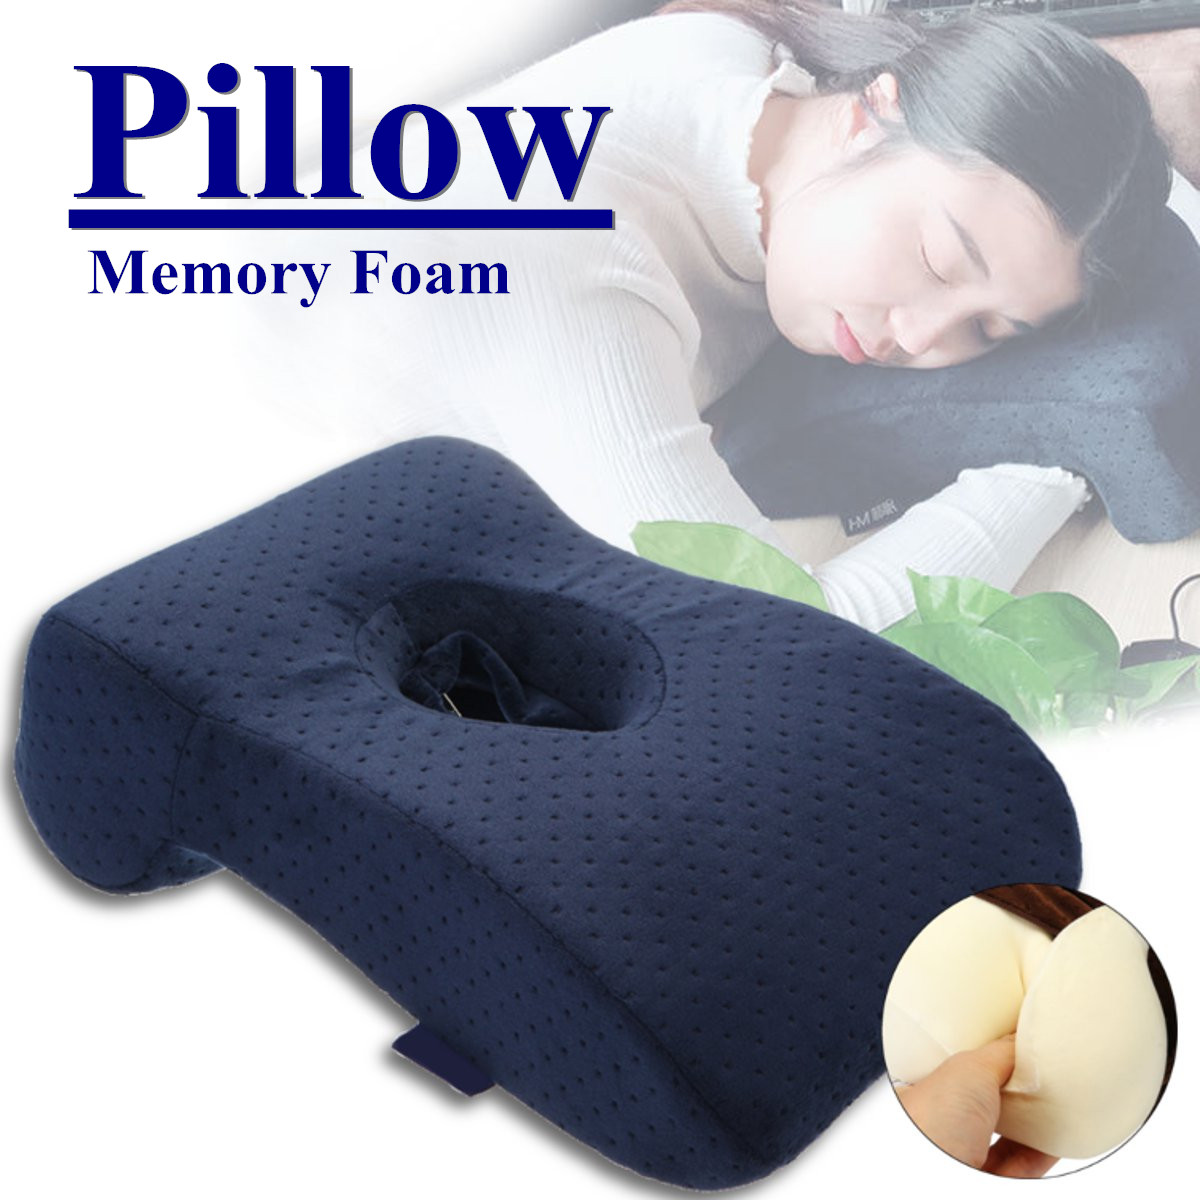 nap sleeping face pillow relief for cnh memory foam slow rebound face down desk pillow sleeper back support hollow design removable washable cover